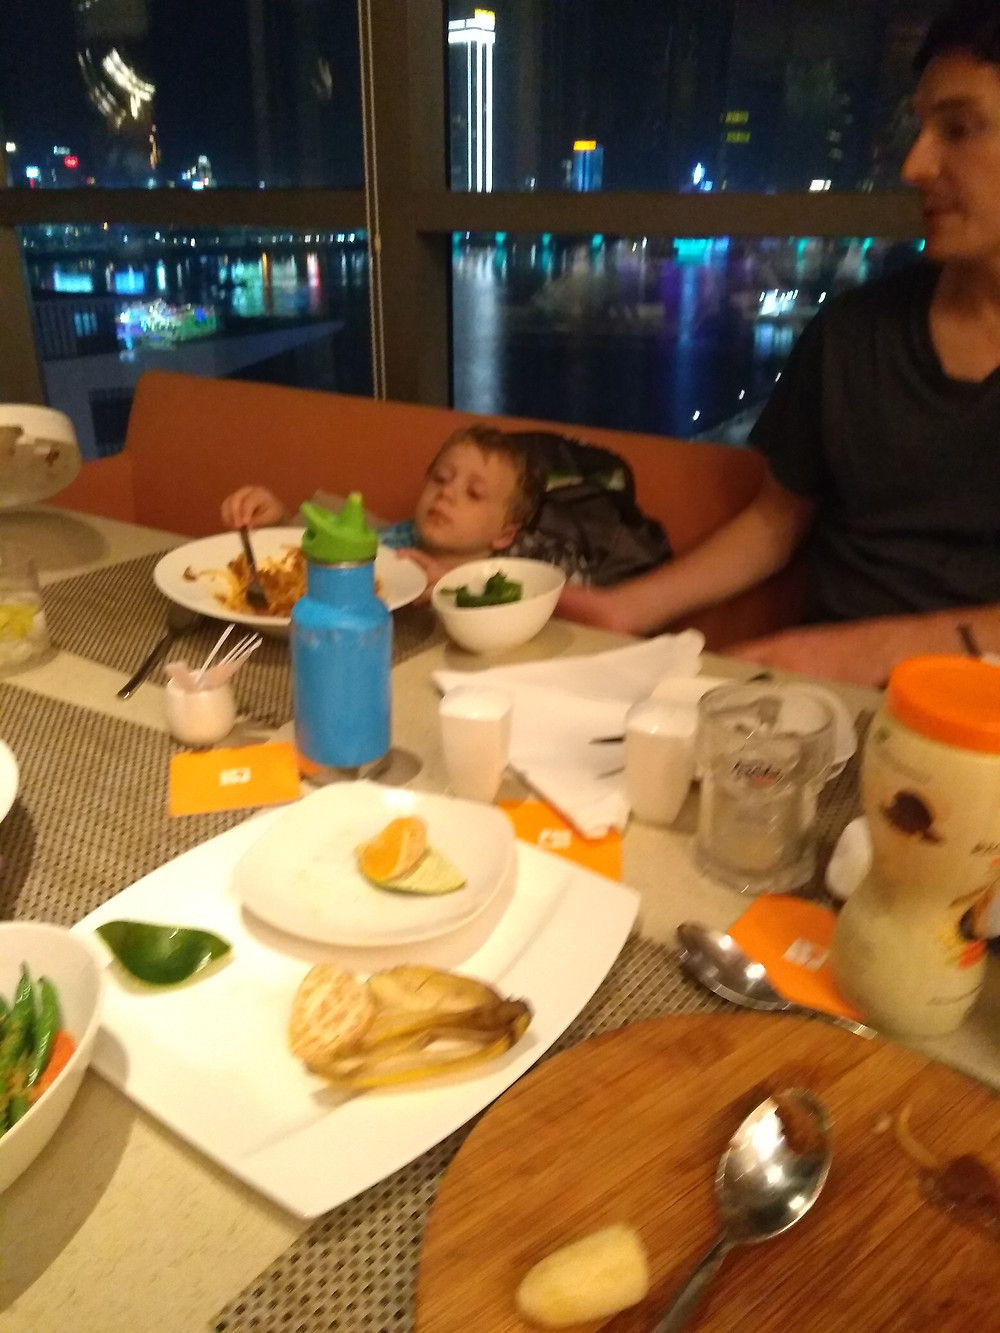 This meal was full of constant crying by all over-tired kids. All we could do was laugh at the absurdity of it.